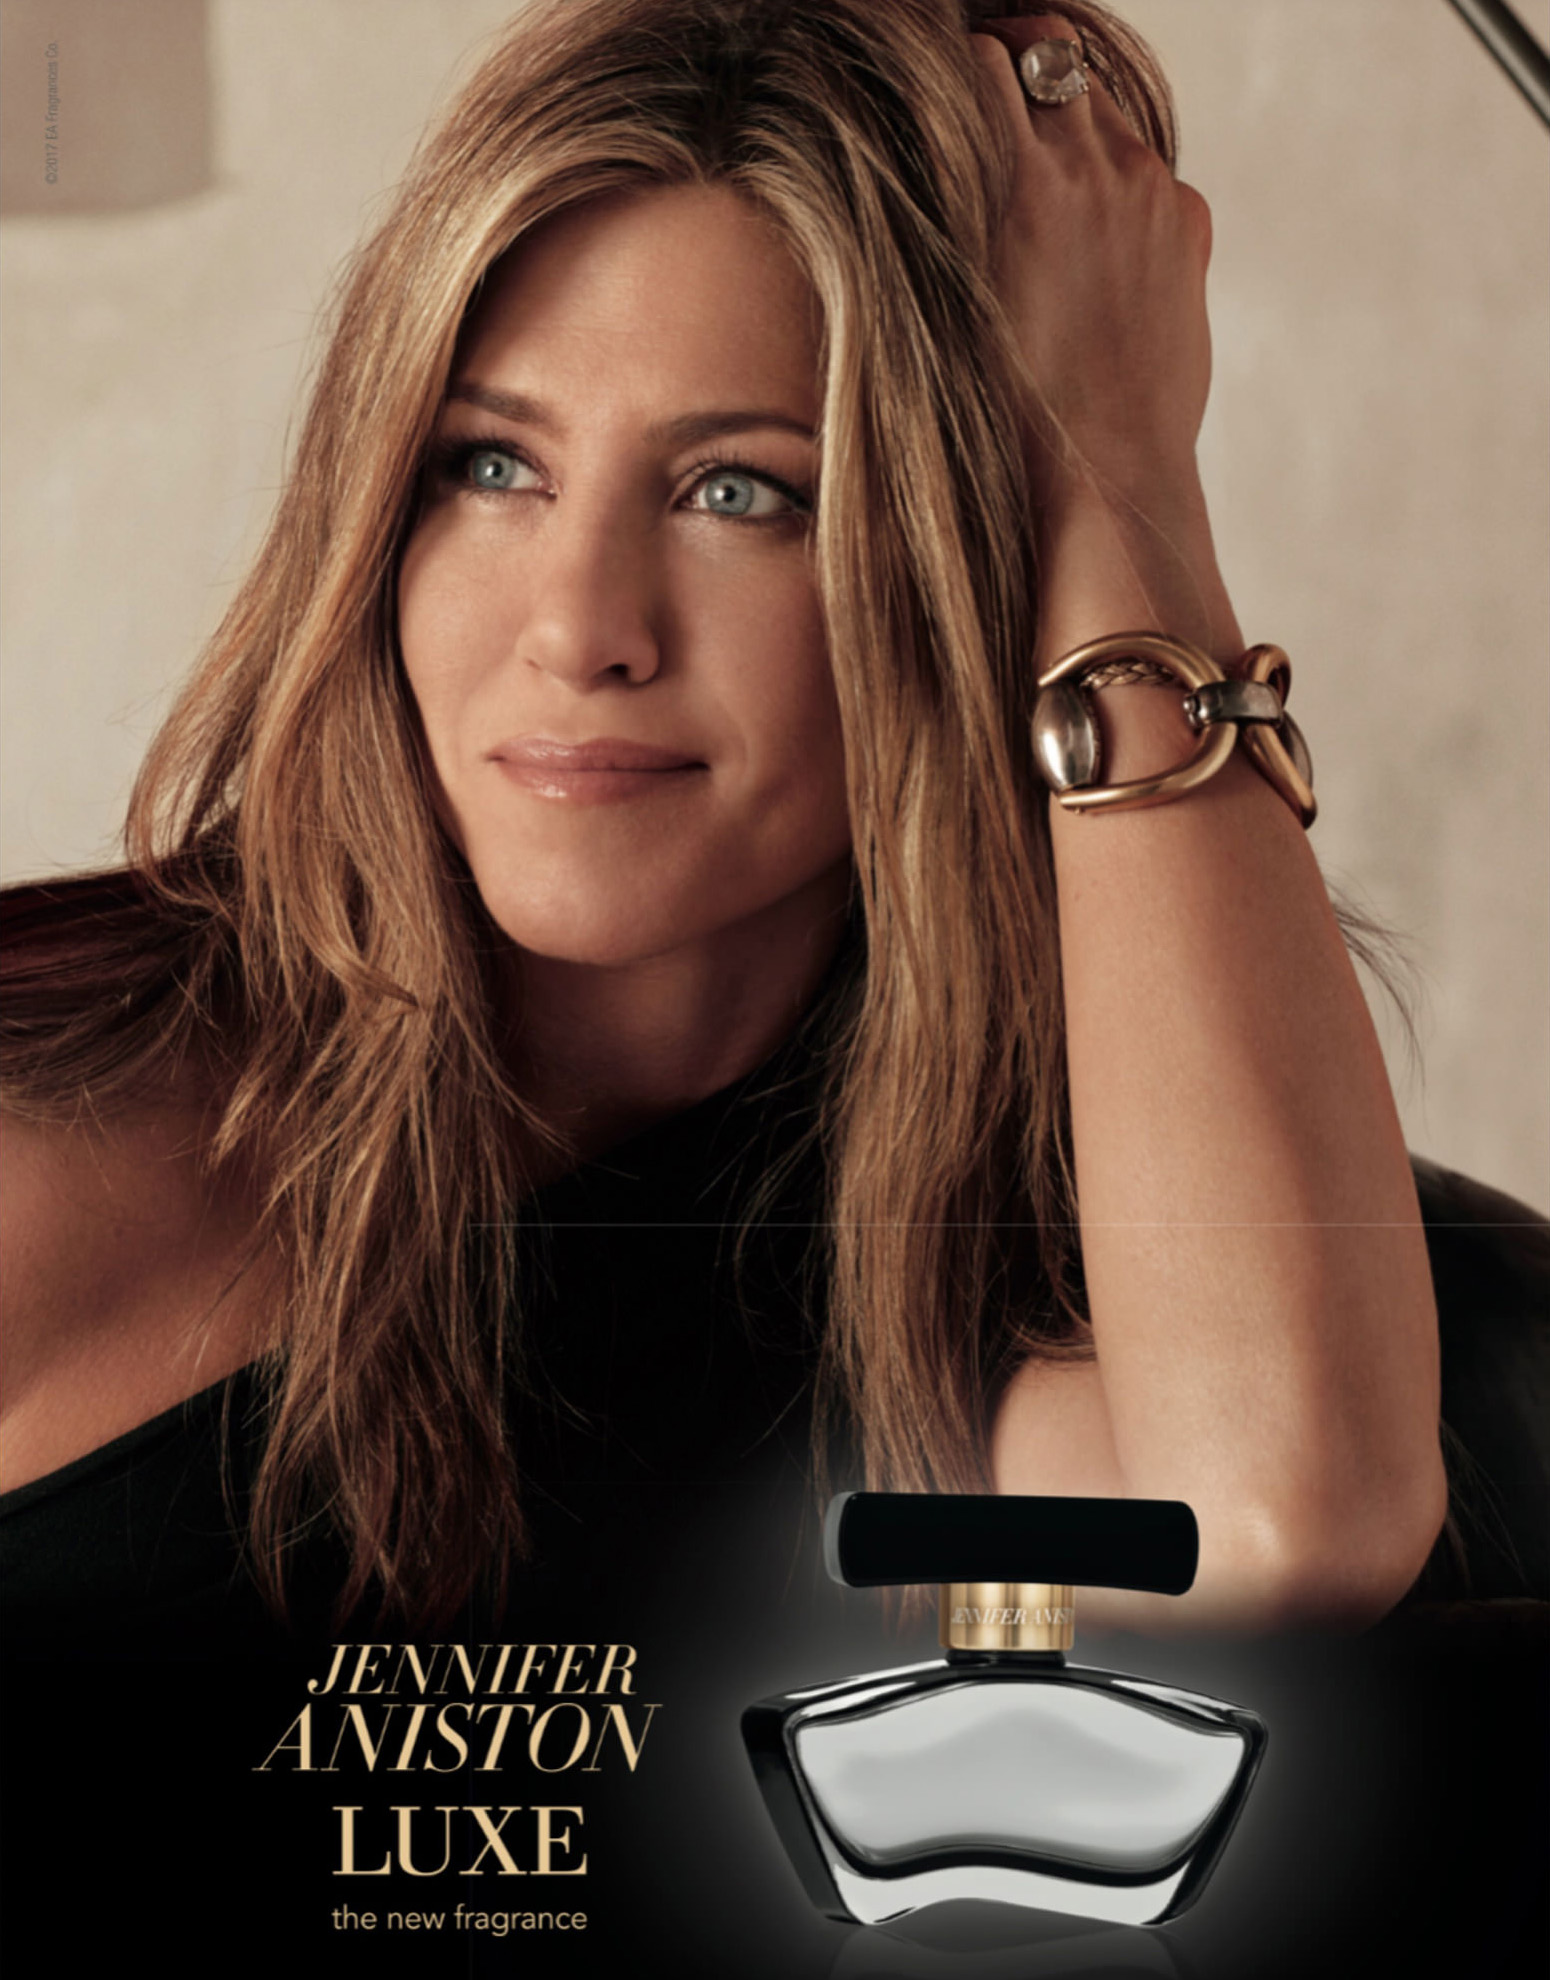 Jennifer Aniston Luxe ~ New Fragrances Jennifer Aniston News